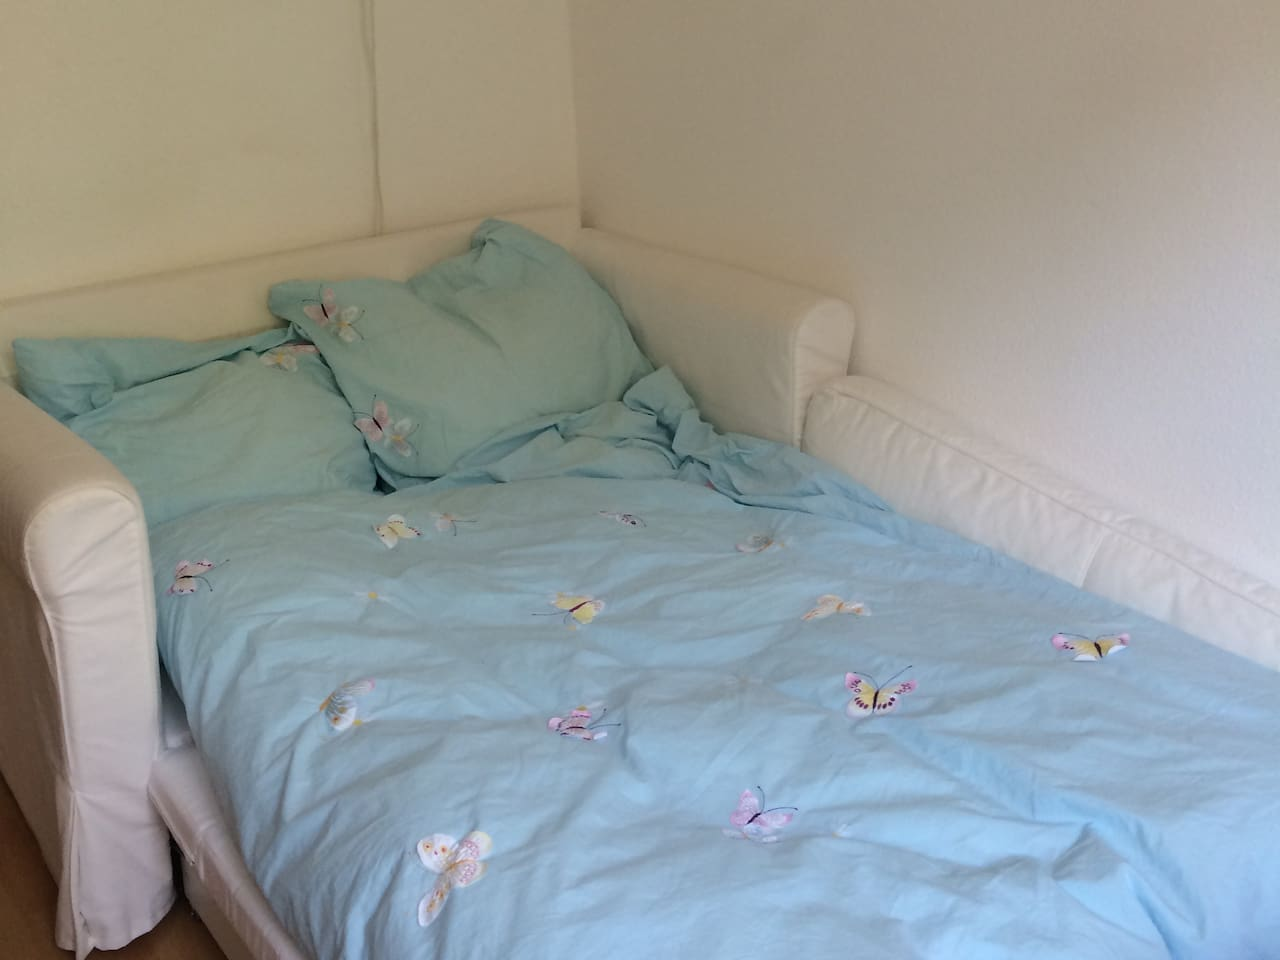 cosy bed, 120 cm x 195 cm, sleeps two persons, duvet 2x2 m